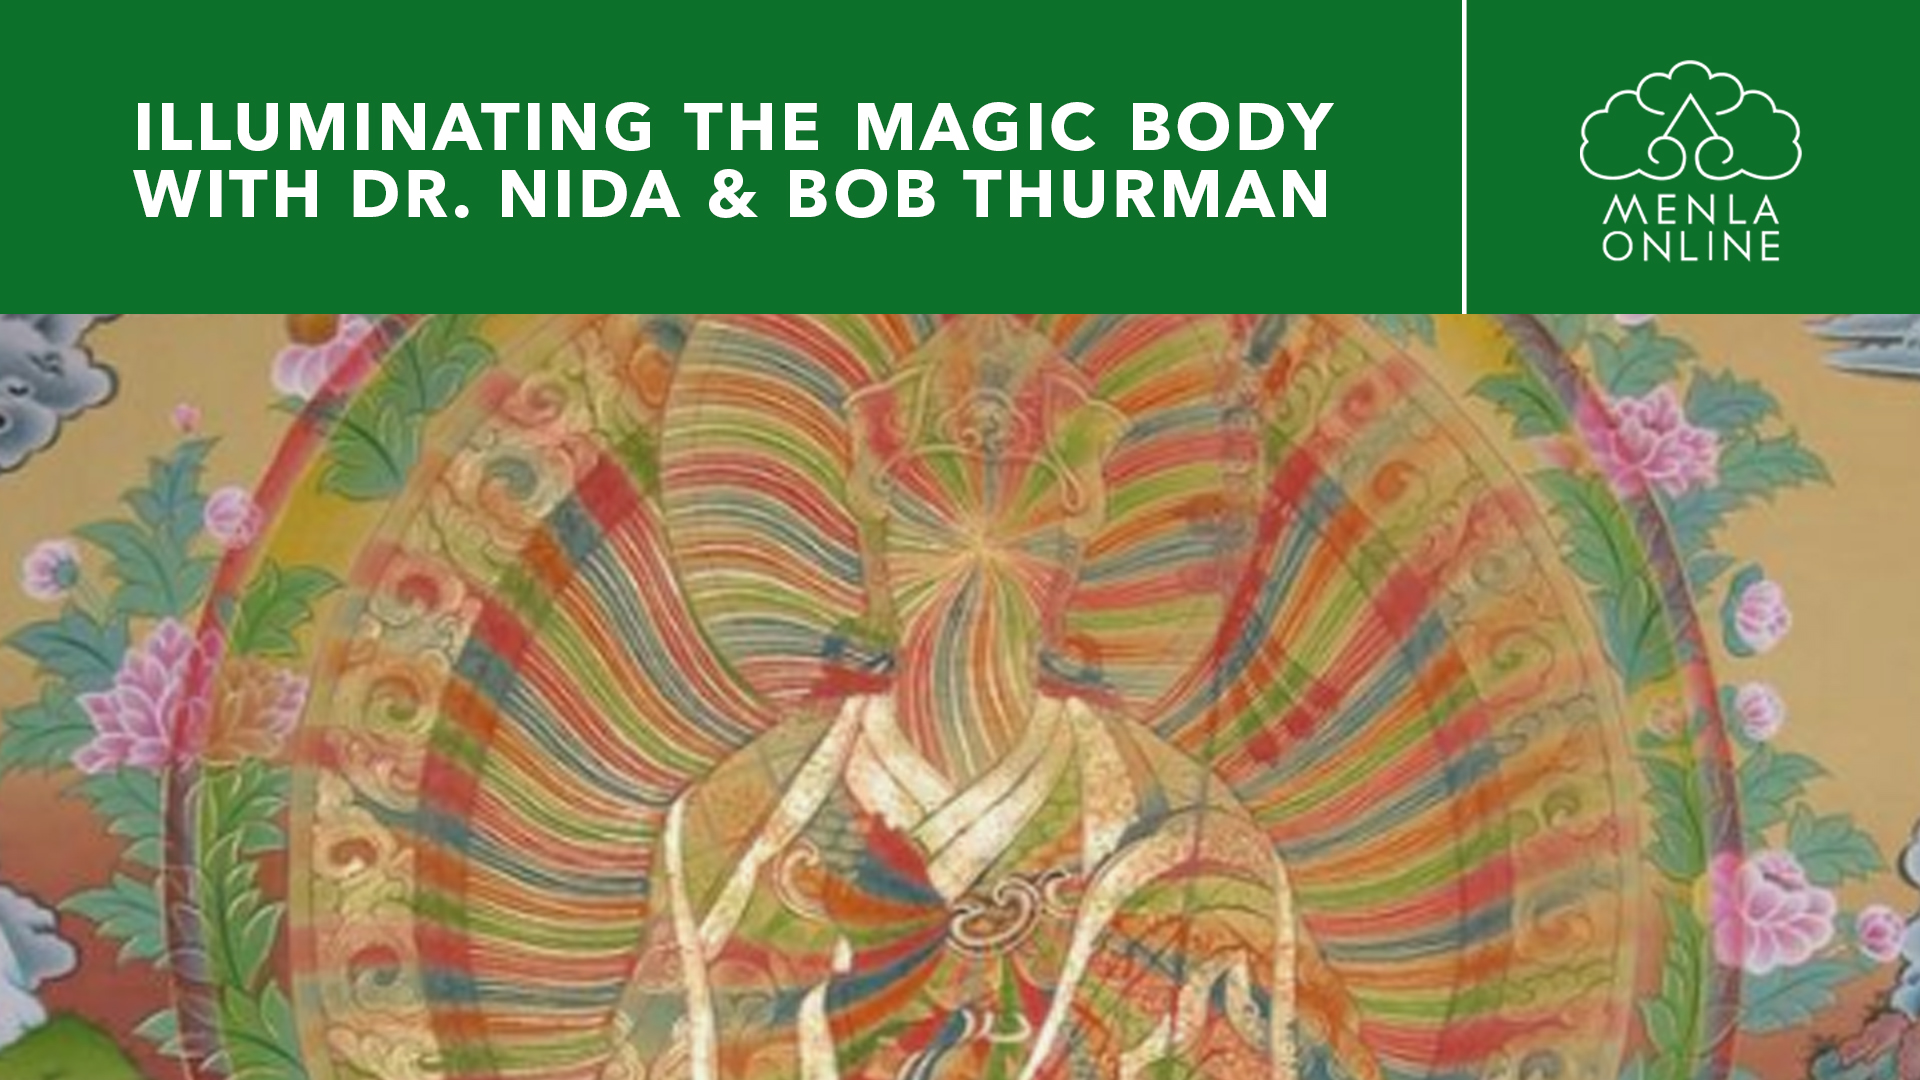 Illuminating the Magic Body with Dr. Nida & Robert A.F. Thurman November 20th-22nd, 2020, Presented by Tibet House US | Menla Online! http://bit.ly/MagicBodyOnline2020